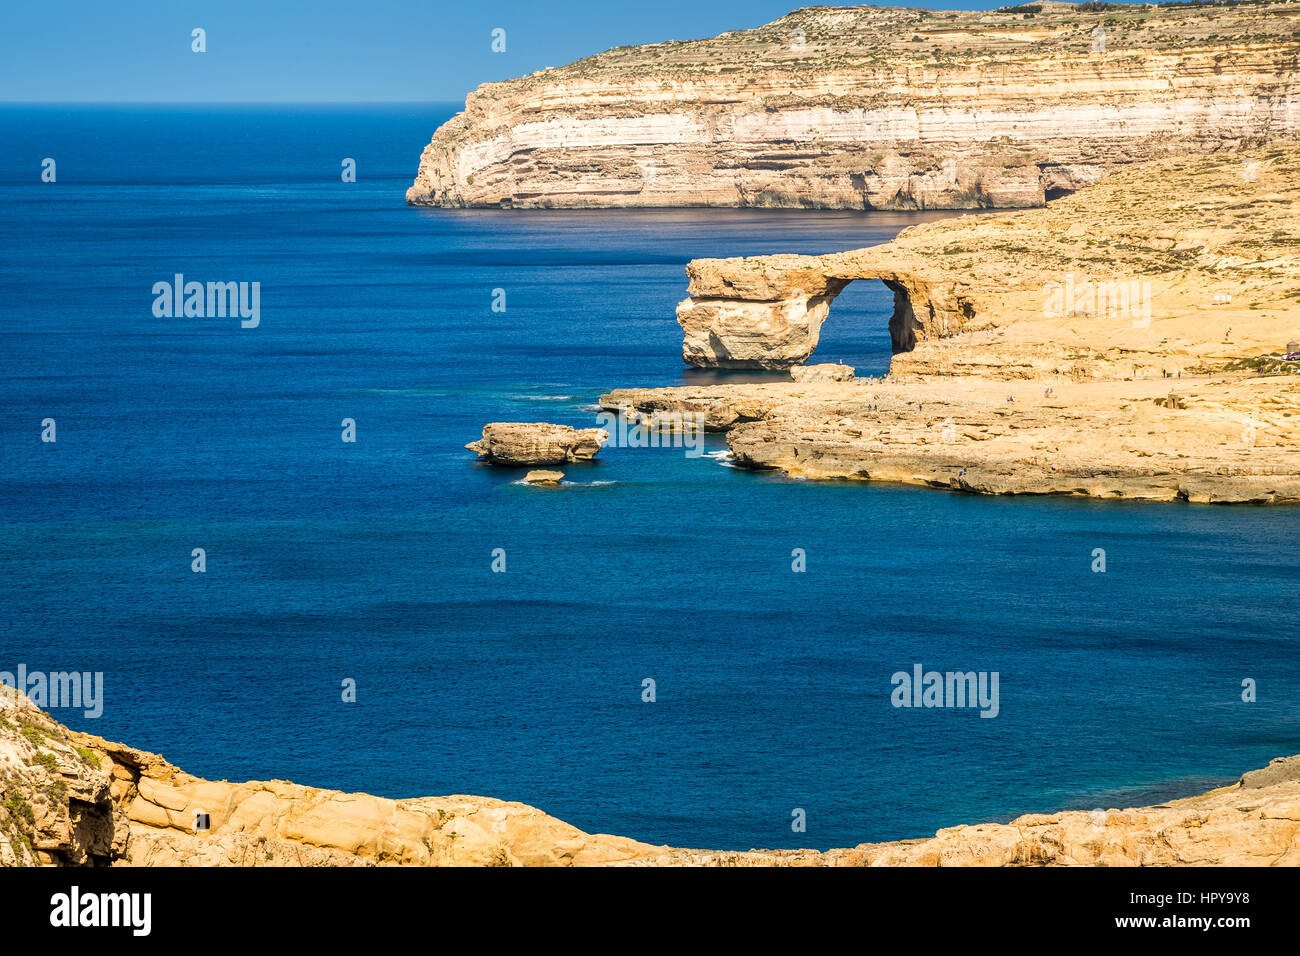 Gozo, Malta - The Azure Window and Dwejra bay on a beautiful summer day with clear blue sky - Stock Image